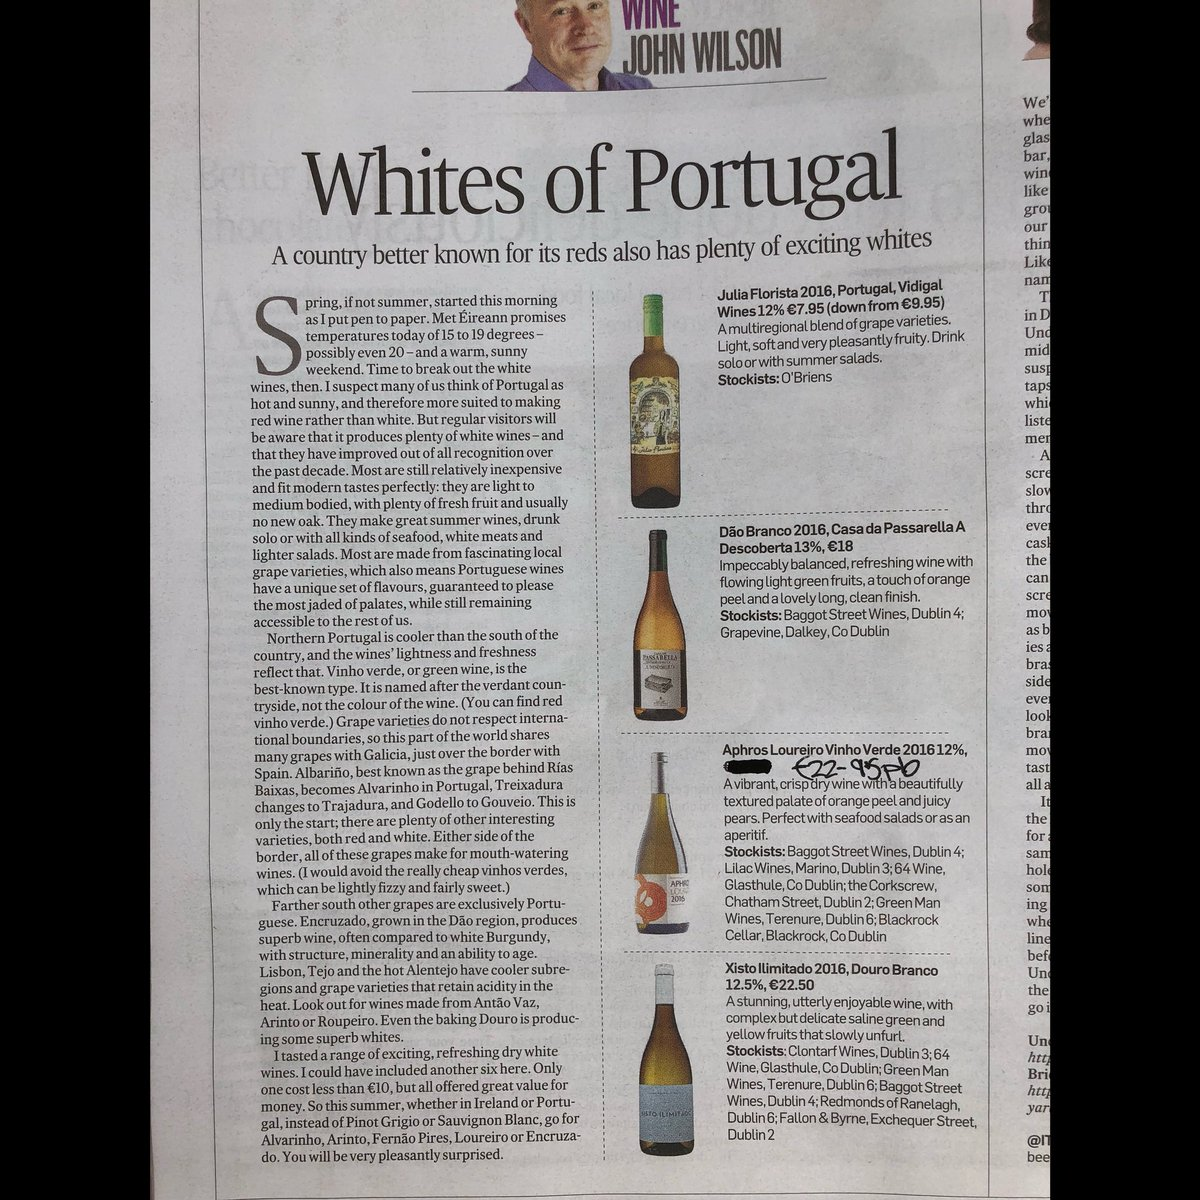 Baggot Street Wines On Twitter We Couldnt Agree More With Wilsononwine And His Glowing Endorsement Of White Wine From Portugal